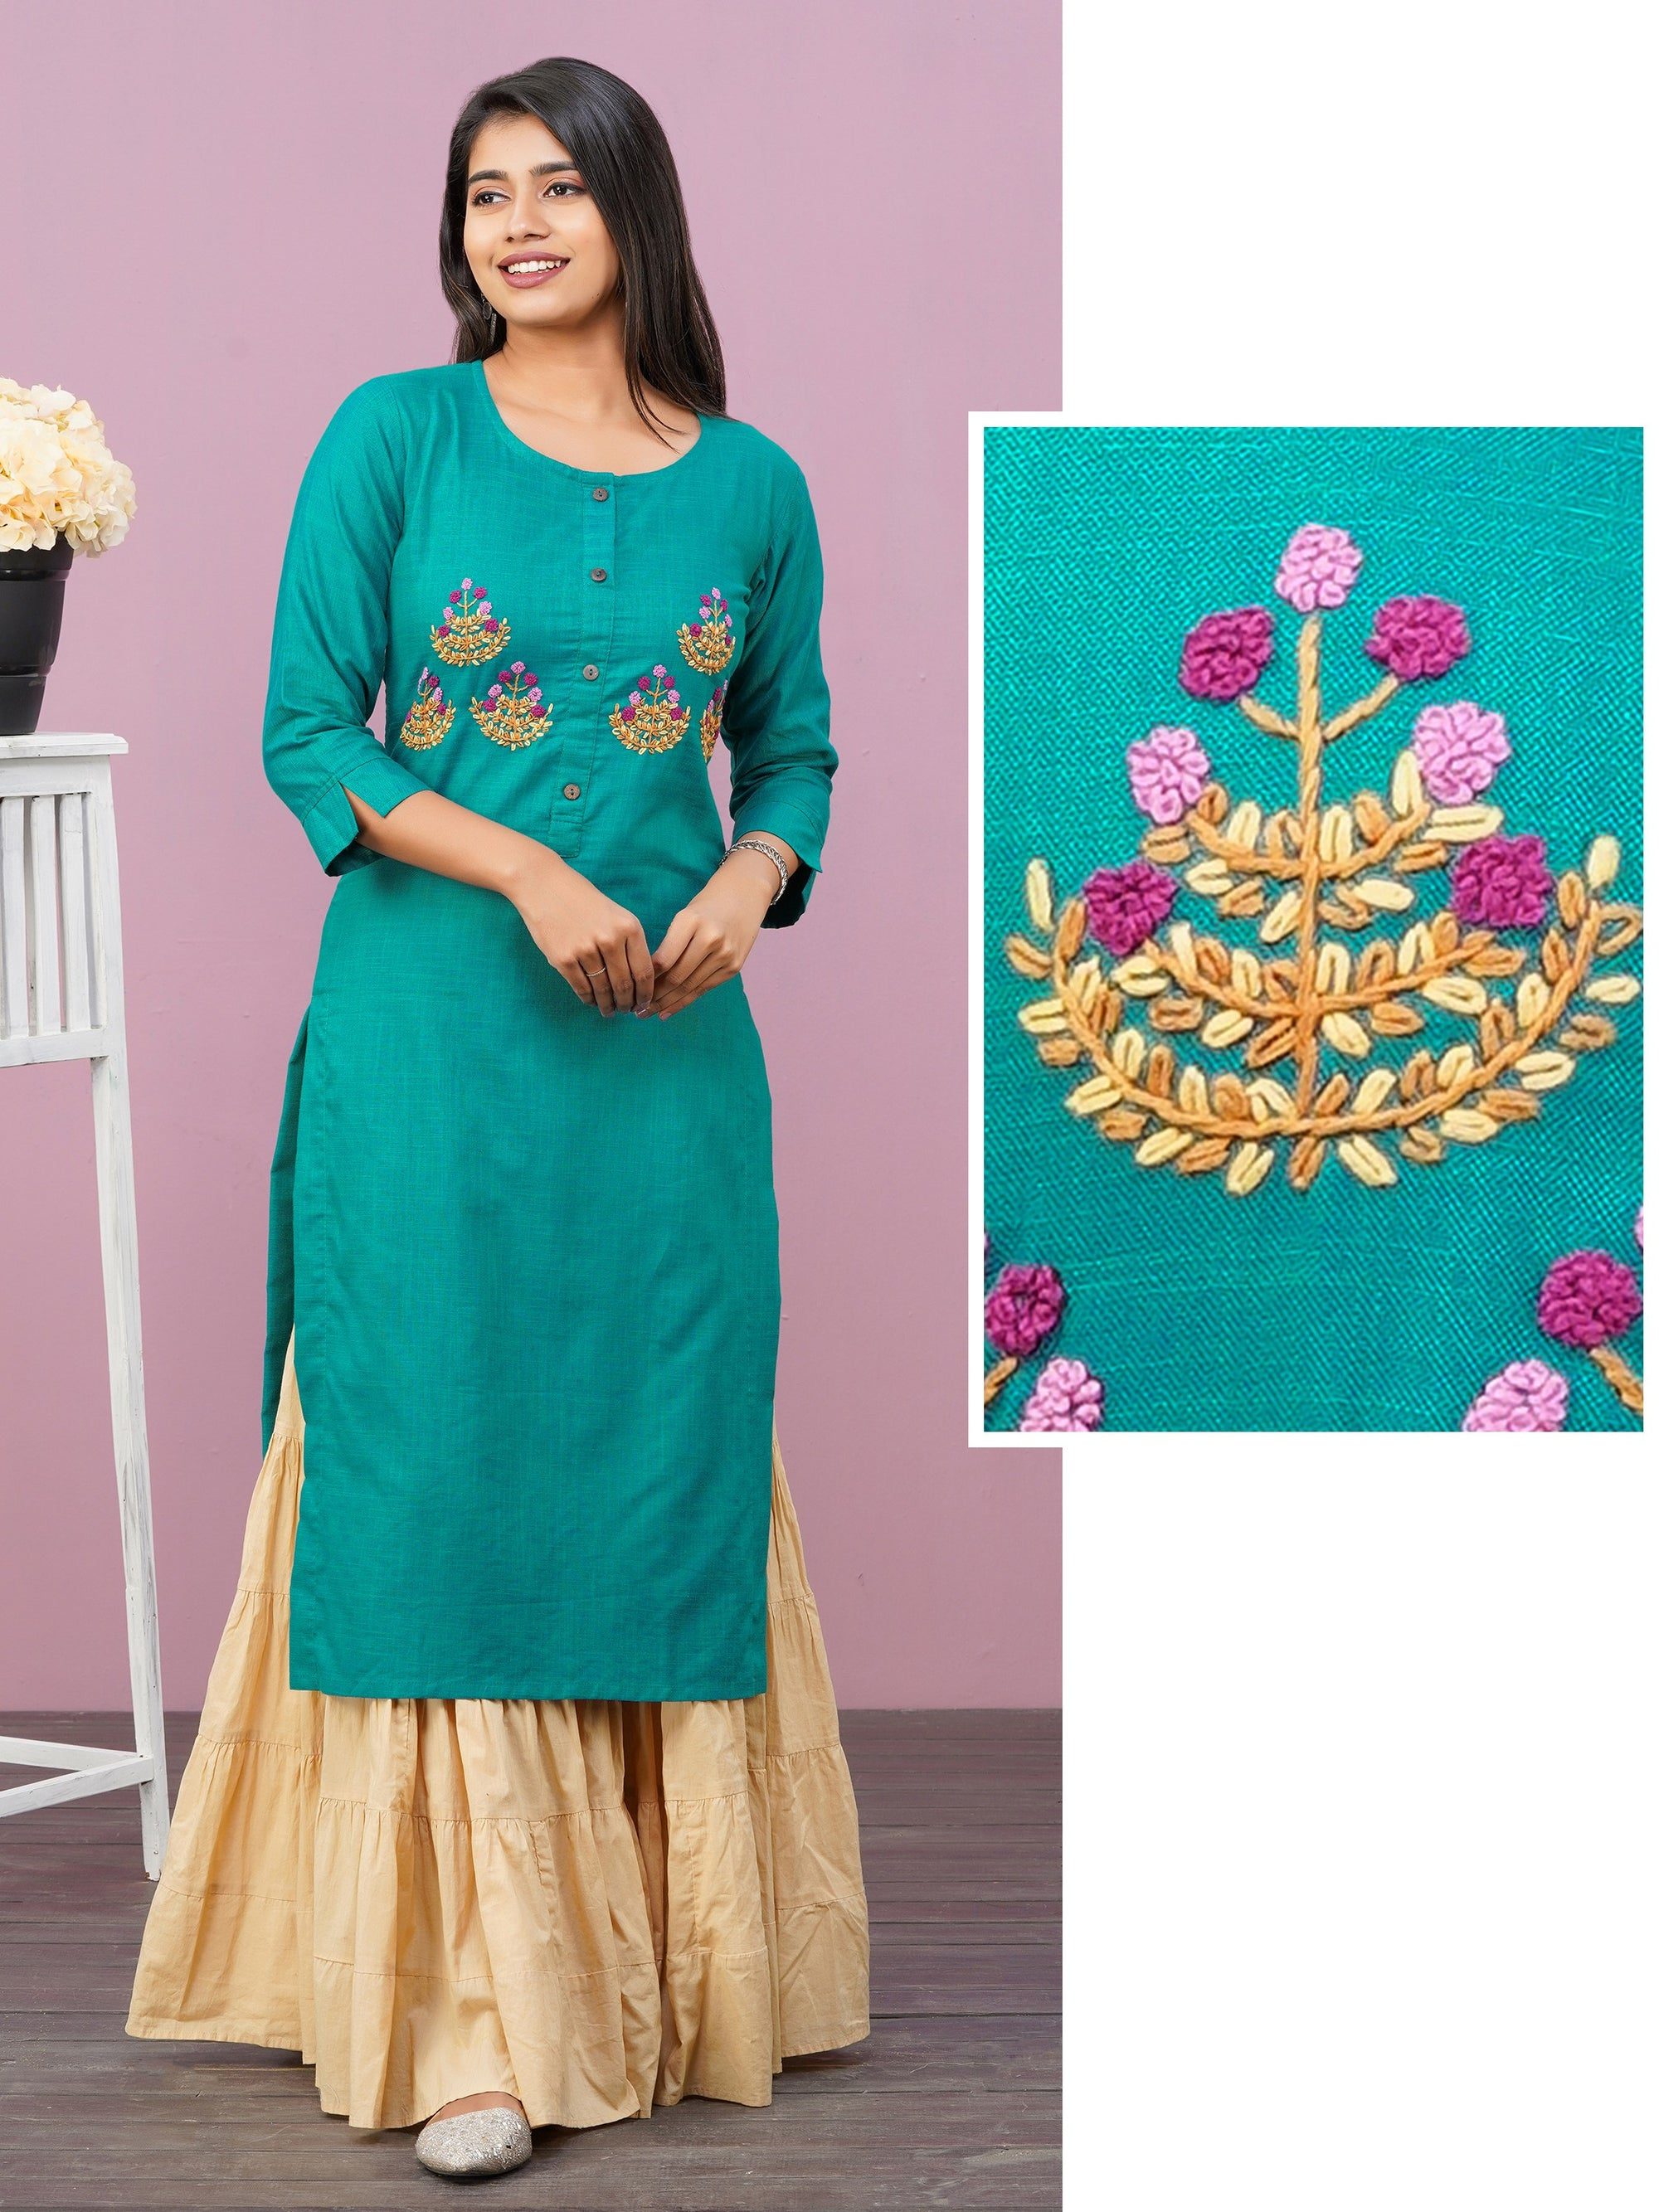 Anchor Patterned French Knot Floral Embroidered Kurti